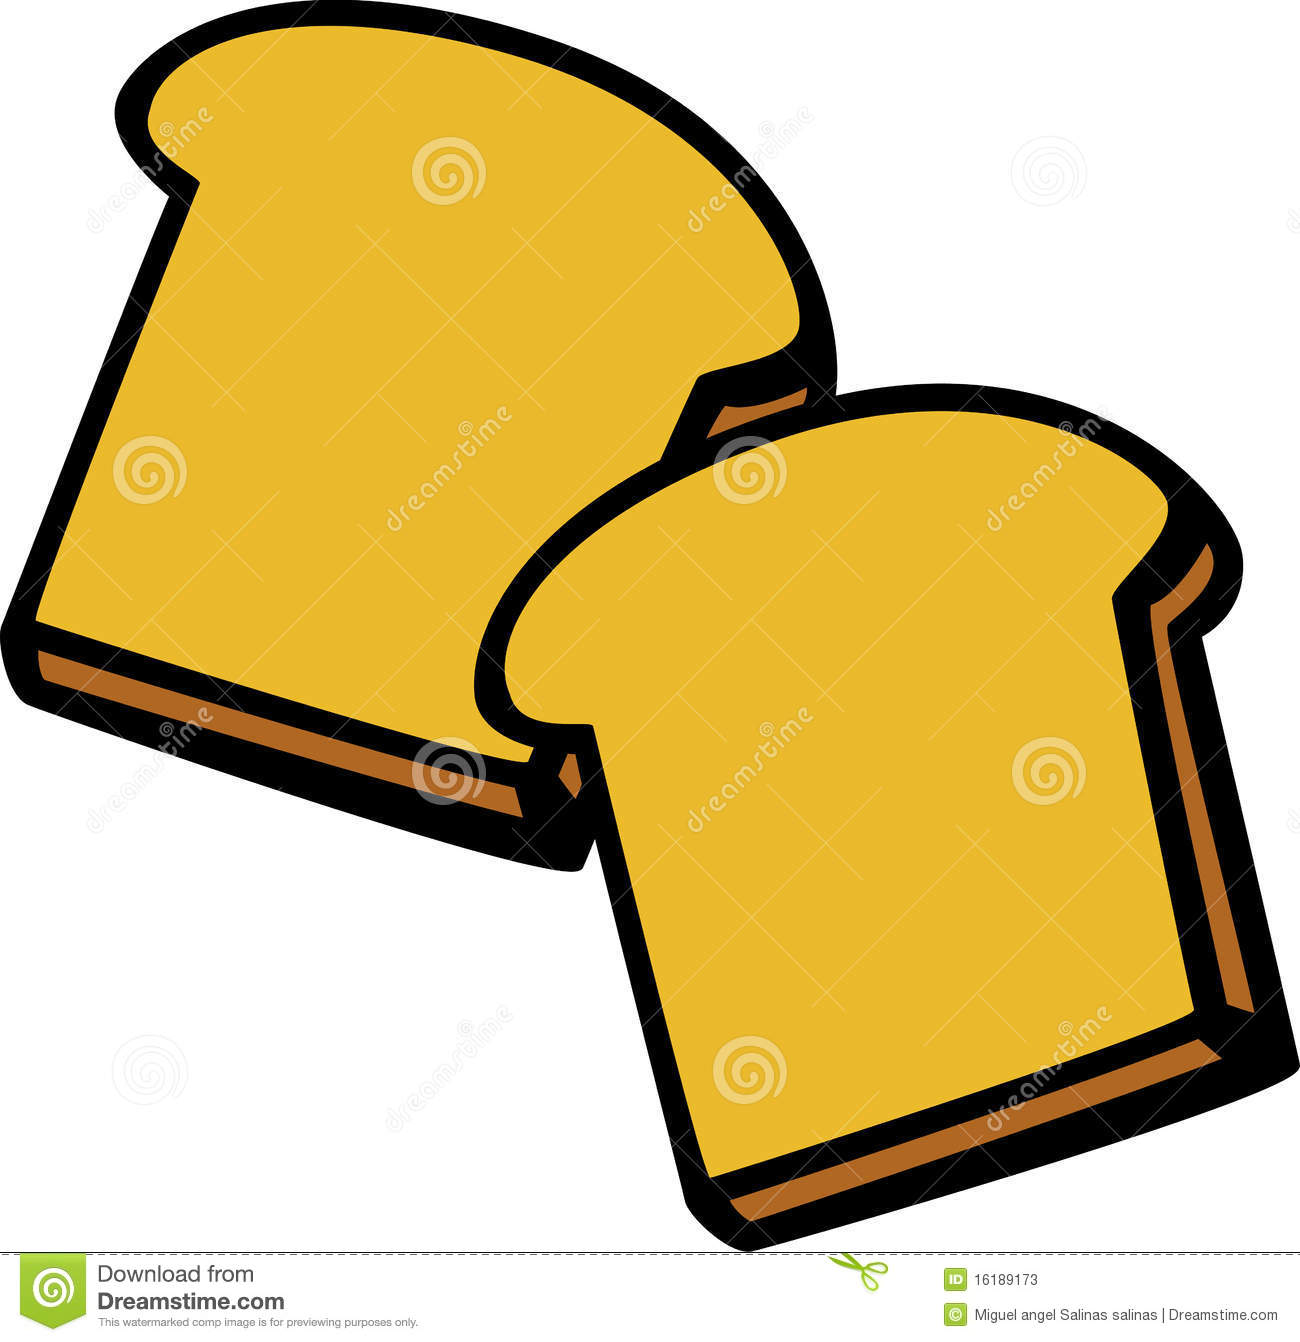 Bread clipart toast bread Bread cliparts Toasted Clipart Toast